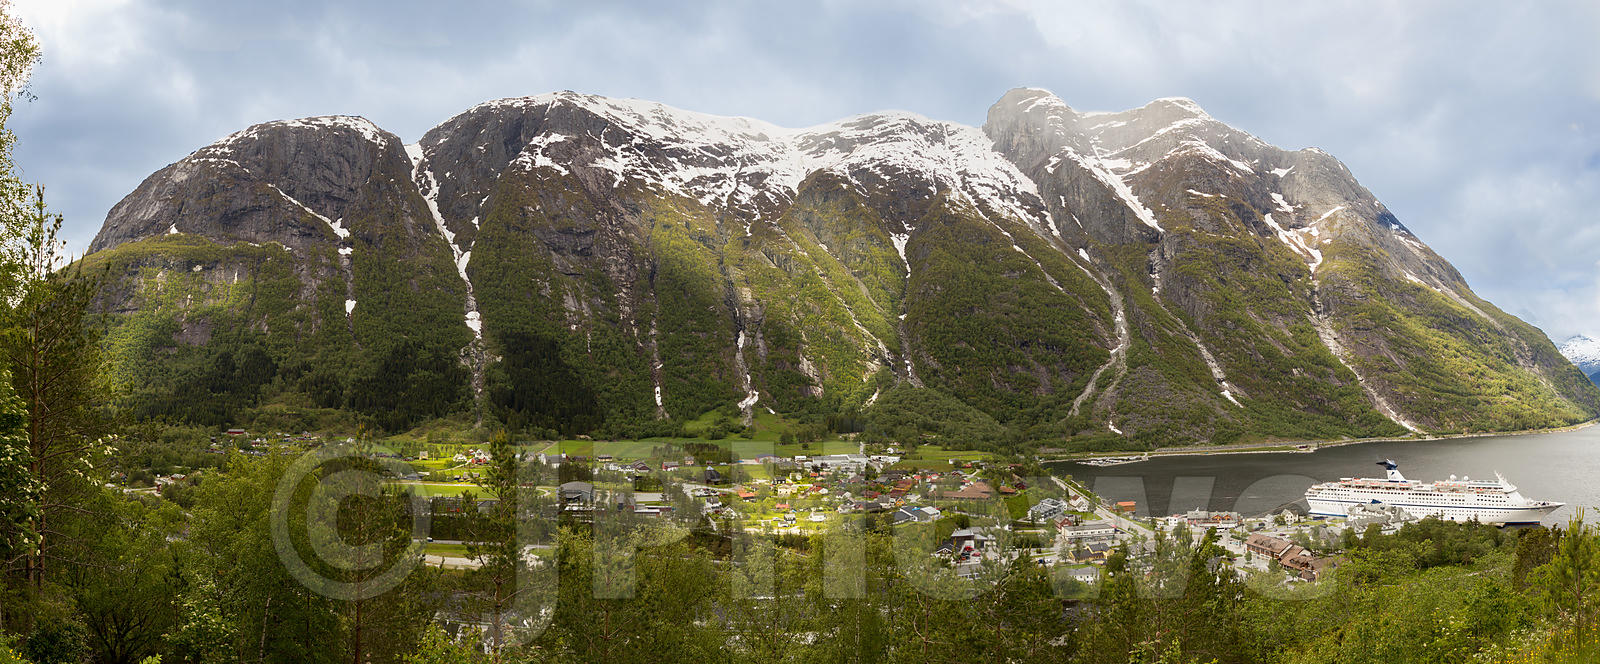 Eidfjord ia a Small Village at the end of the Hardangerfjord